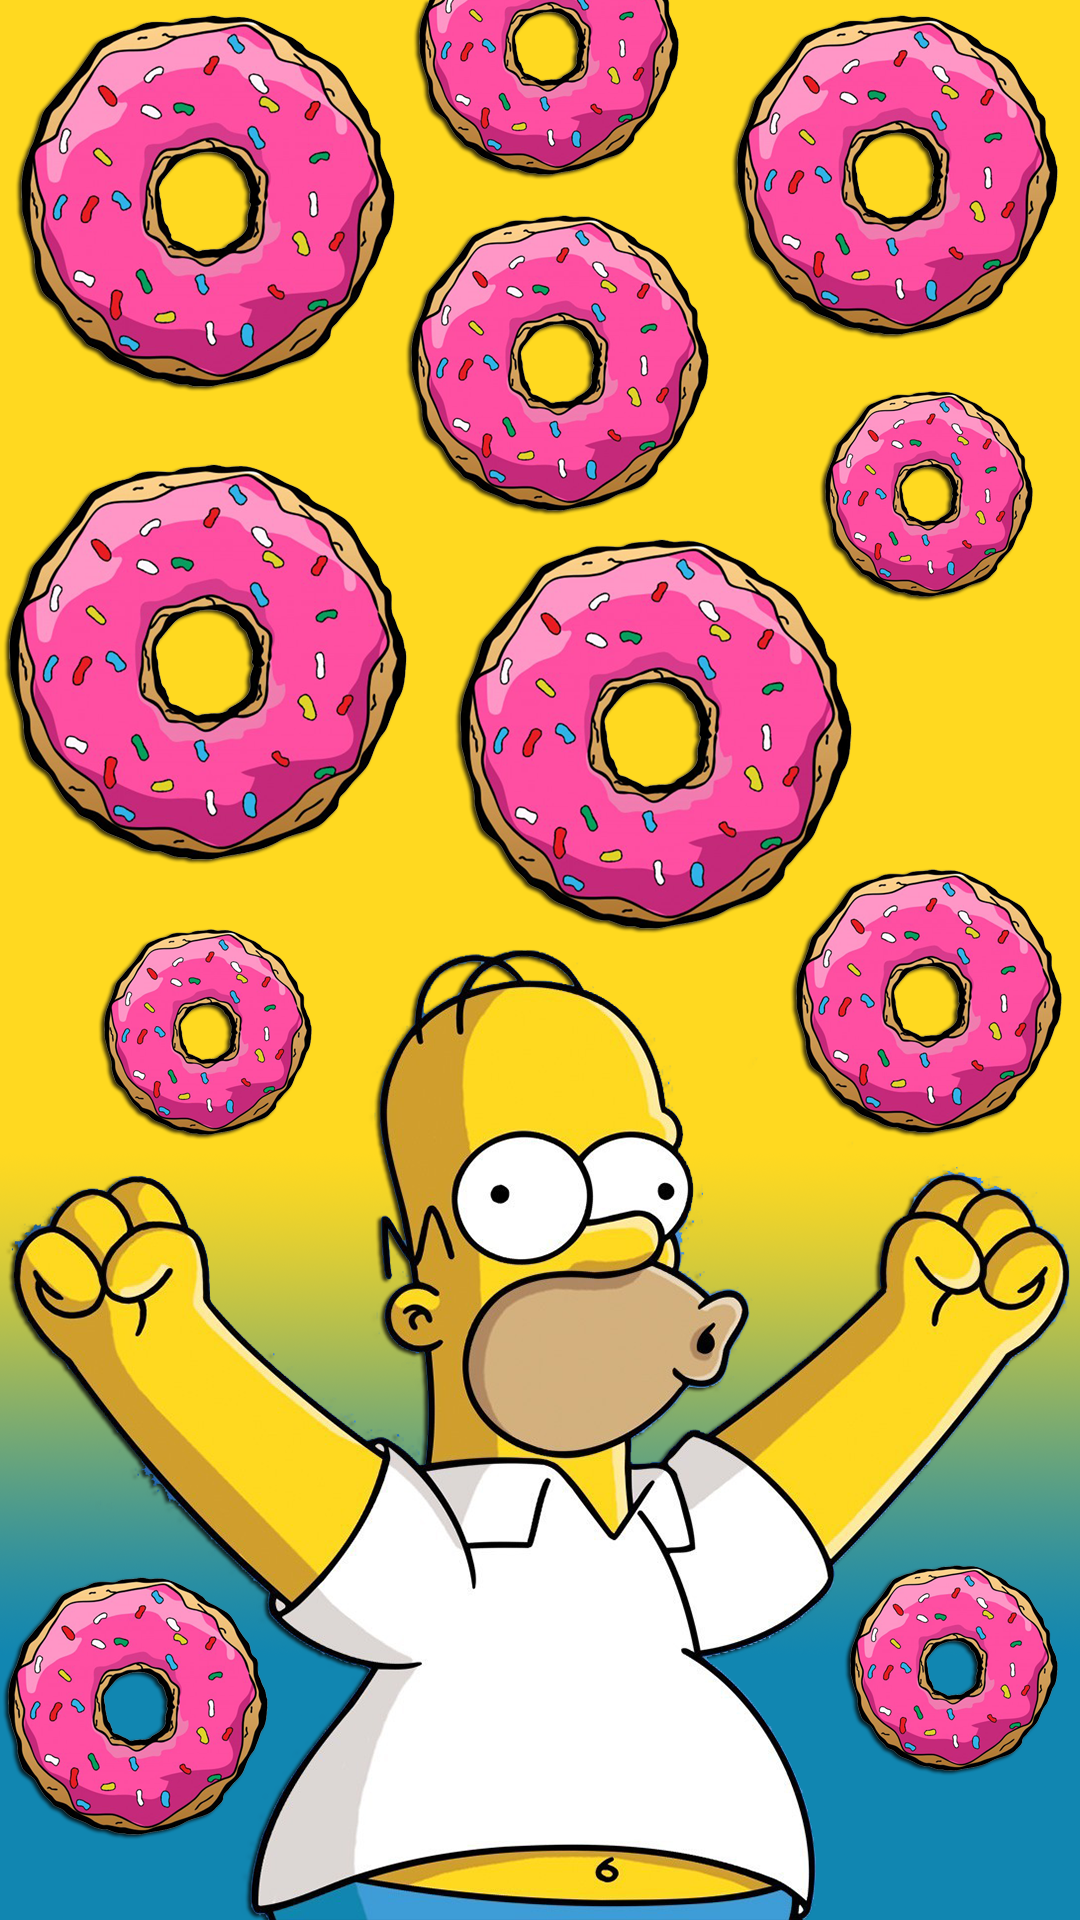 Free Hd Homer Simpson Donuts Iphone Wallpaper For Download 0425